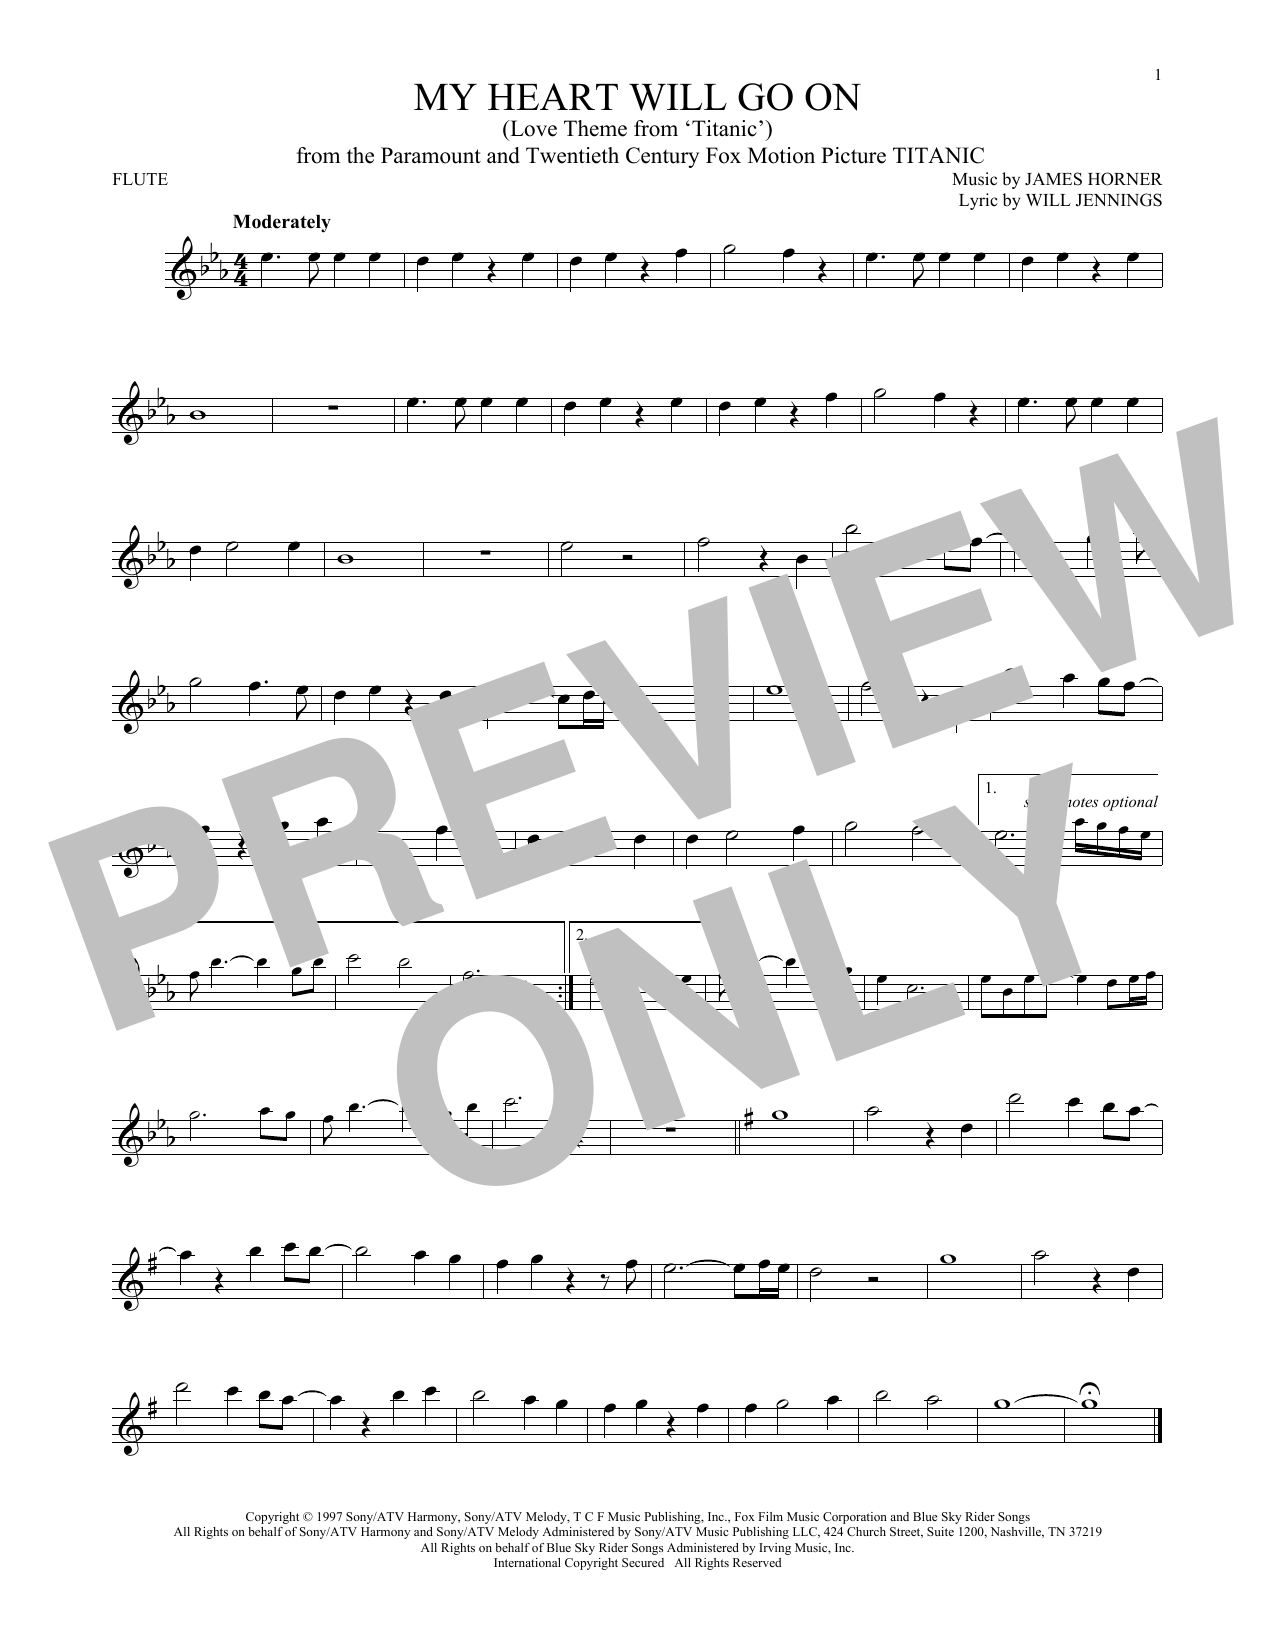 Celine Dion 'My Heart Will Go On (Love Theme From 'Titanic')' Sheet Music  Notes, Chords | Download Printable Flute - SKU: 176657